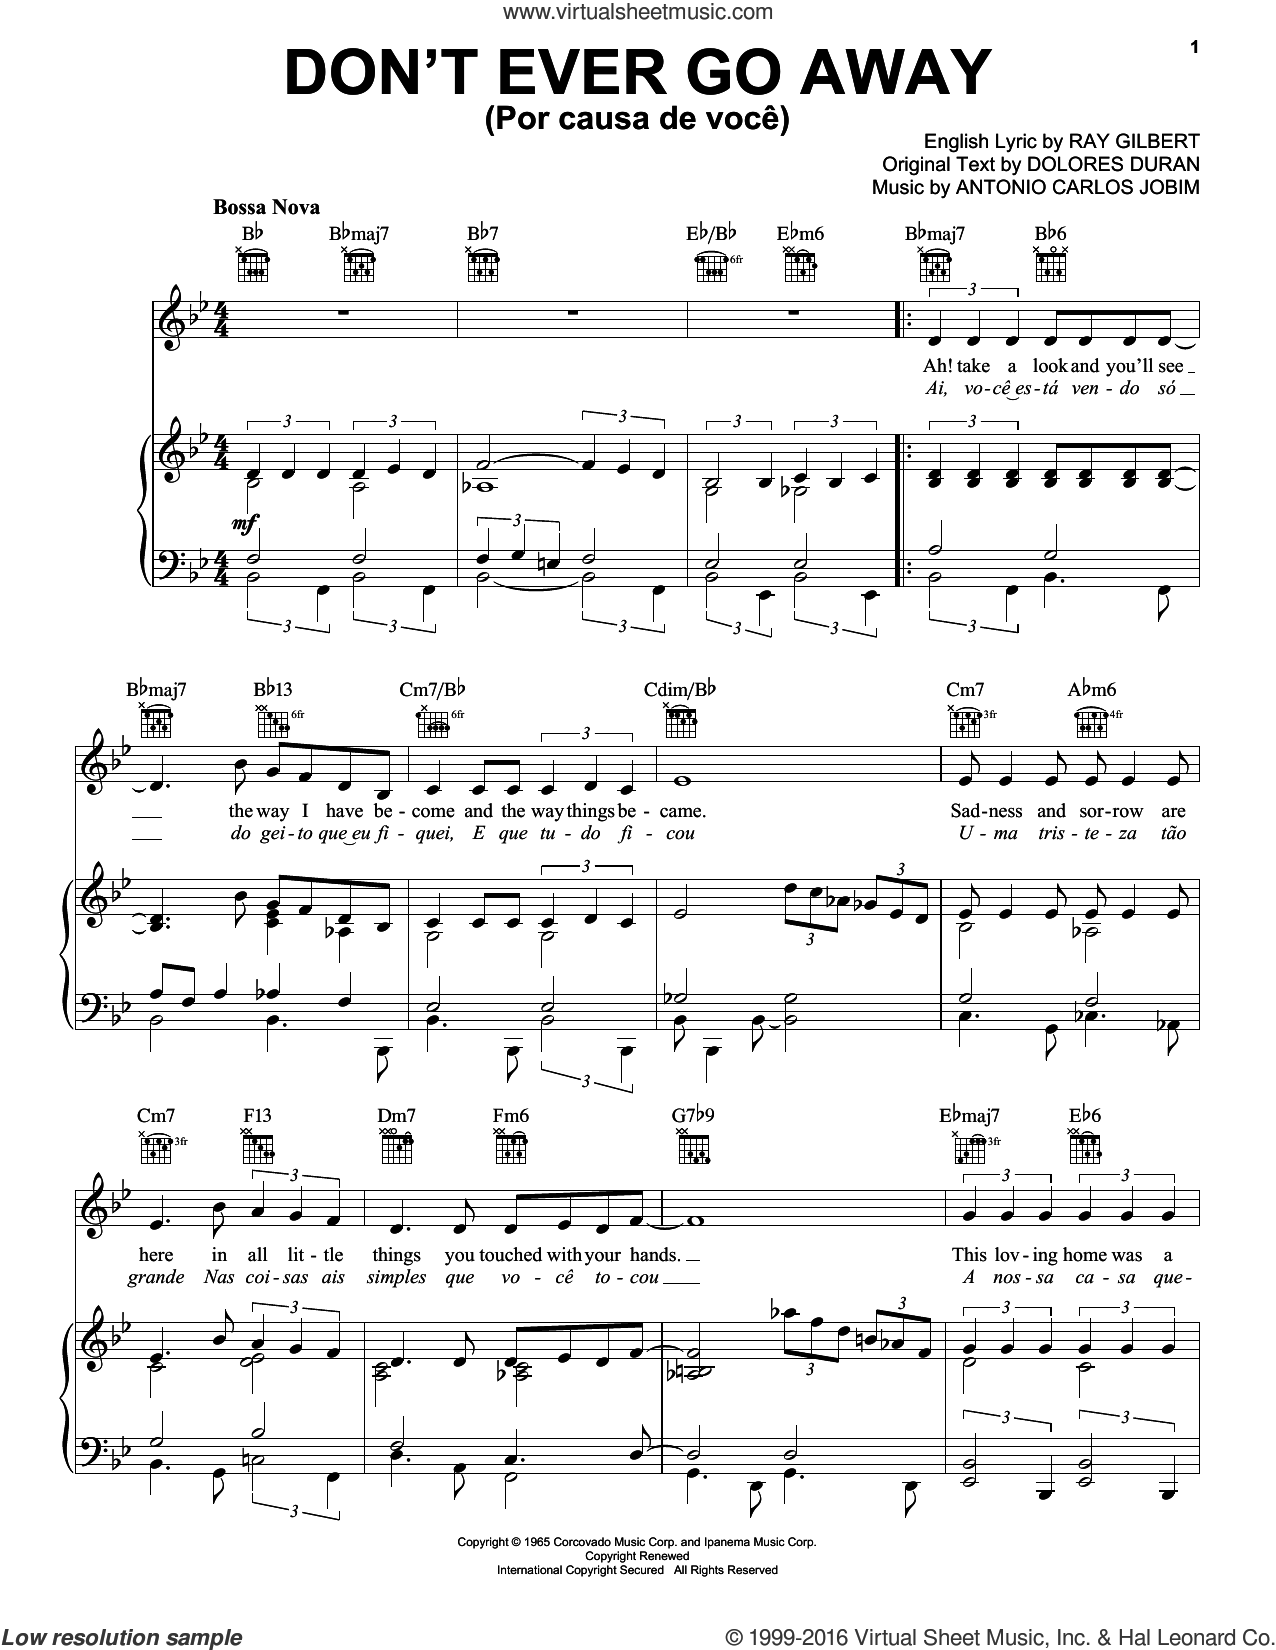 Don't Ever Go Away (Por Causa De Voce) sheet music for voice, piano or guitar by Ray Gilbert, Frank Sinatra and Antonio Carlos Jobim. Score Image Preview.